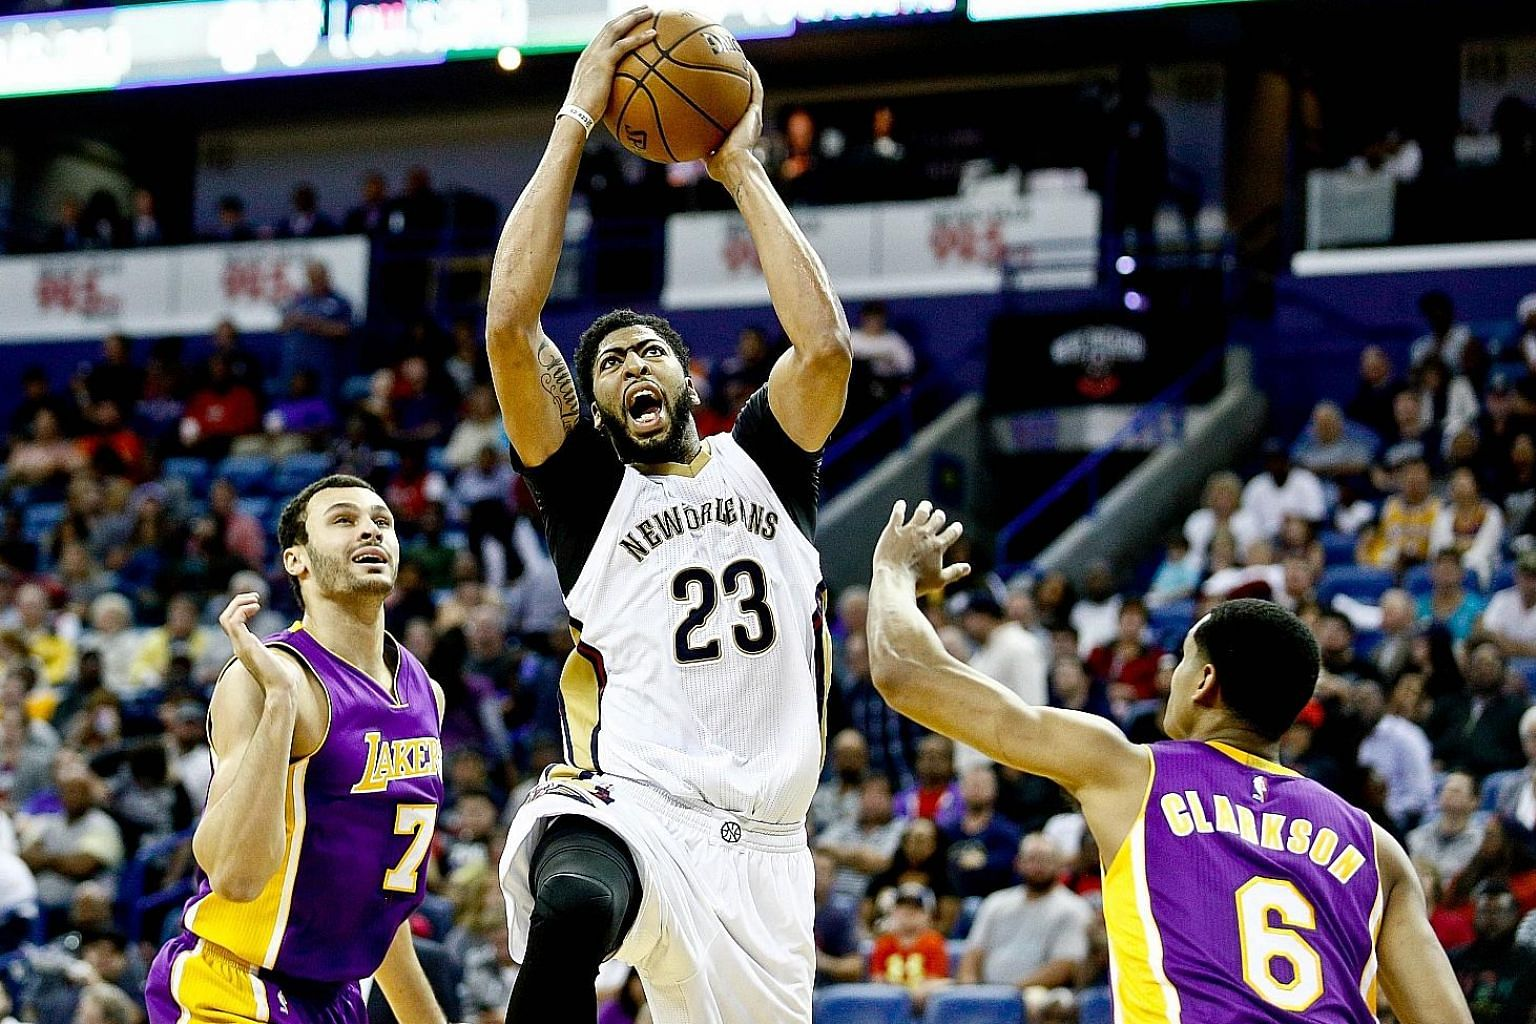 Pelicans' Anthony Davis drives between Lakers' Larry Nance Jr. and Jordan Clarkson at the Smoothie King Centre. Davis, the NBA's leading scorer, has finished with at least 35 points and 10 rebounds seven times this season.